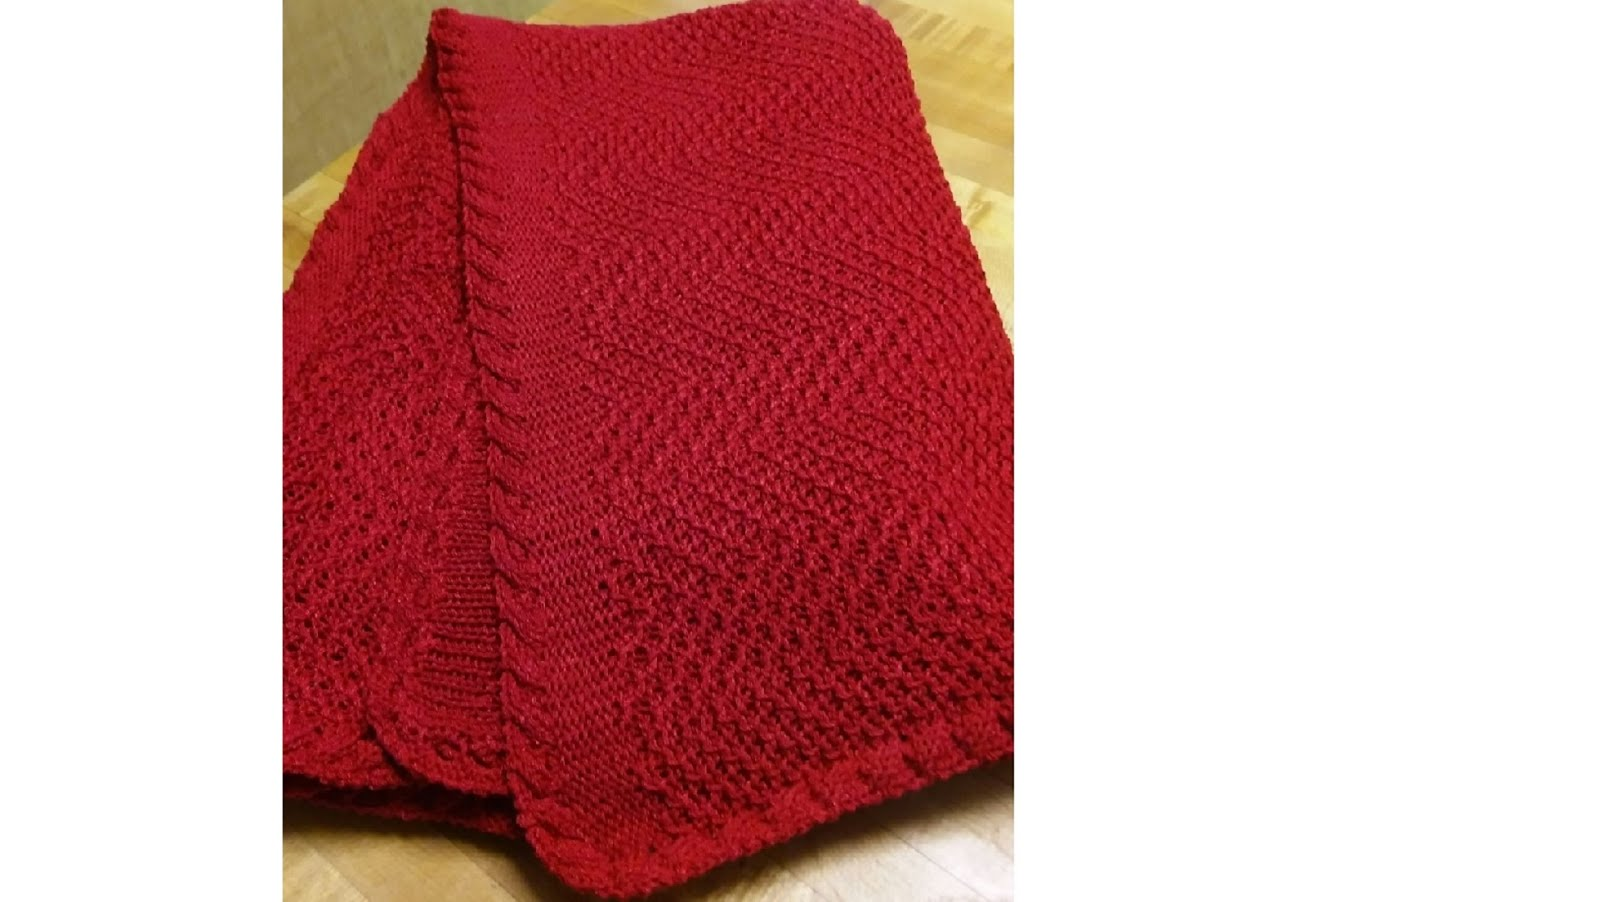 Marzipanknits: Free Machine Knitting Pattern